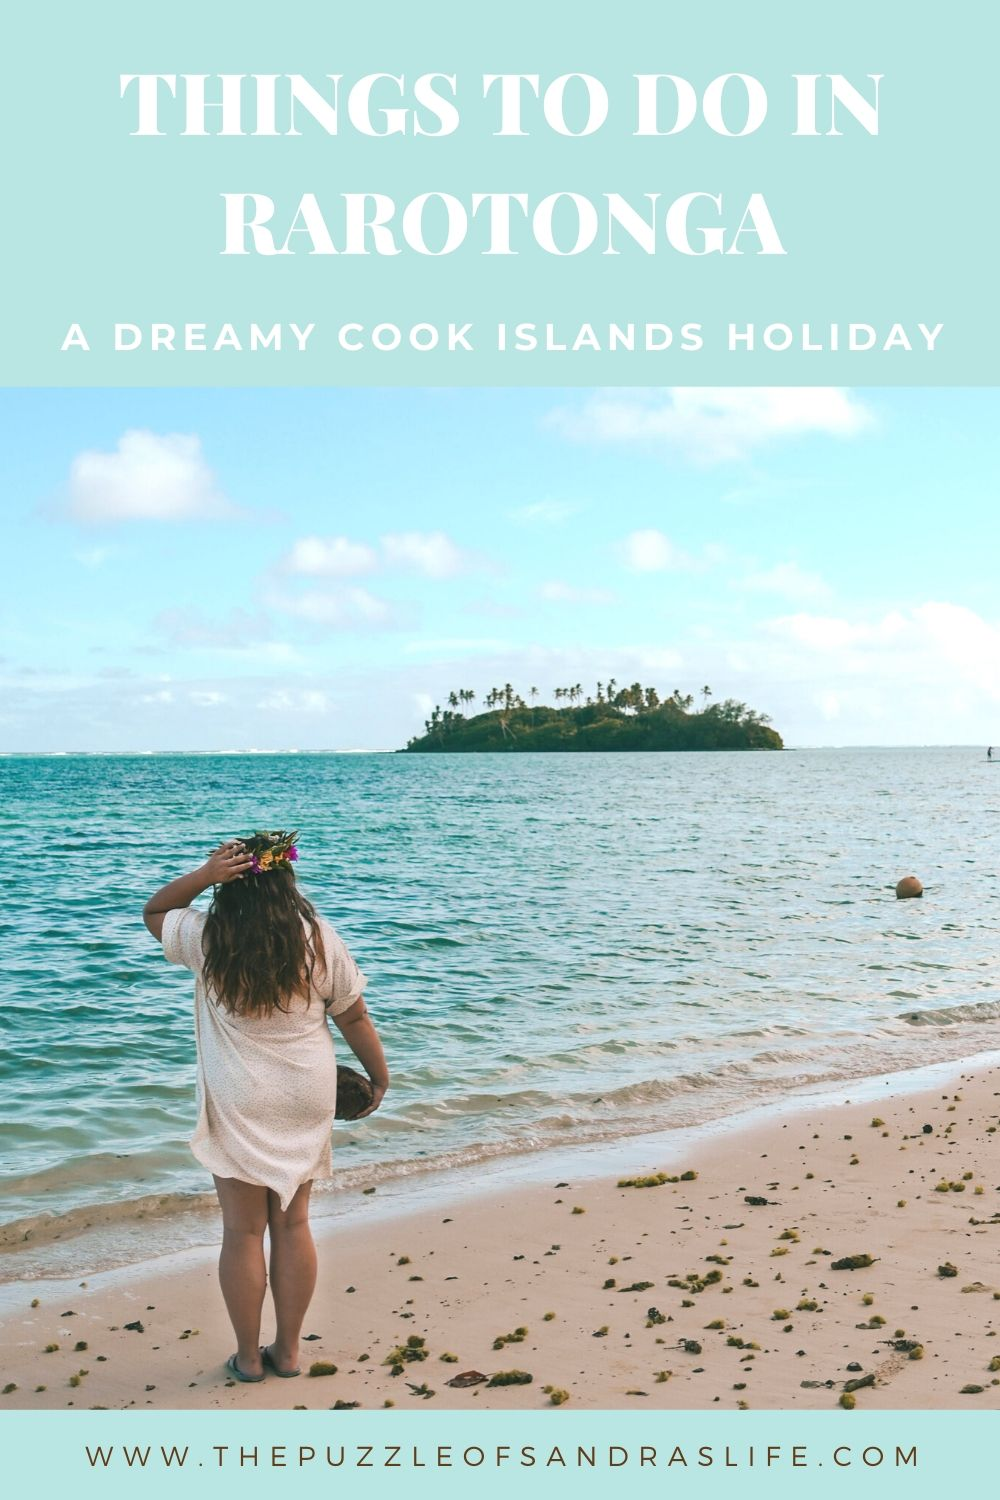 Rarotonga holiday travel guide